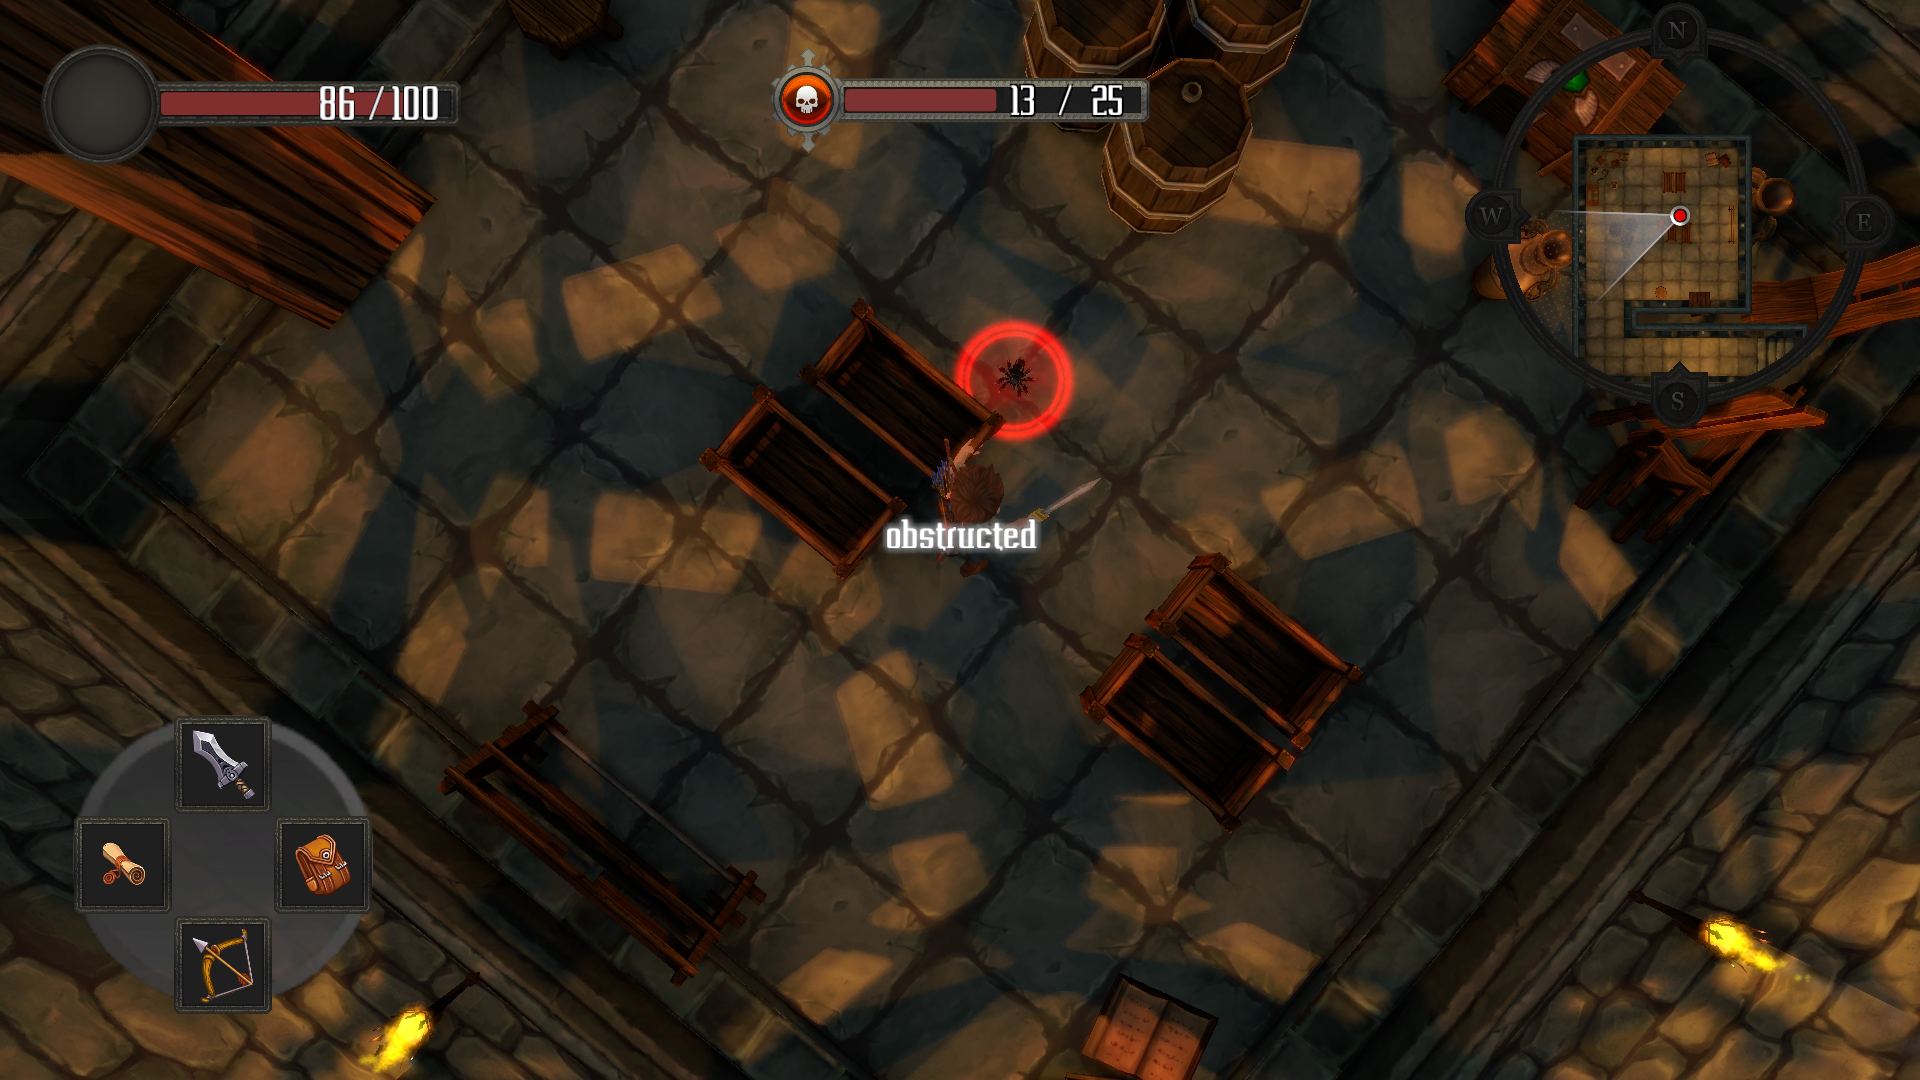 melee attack obstructed